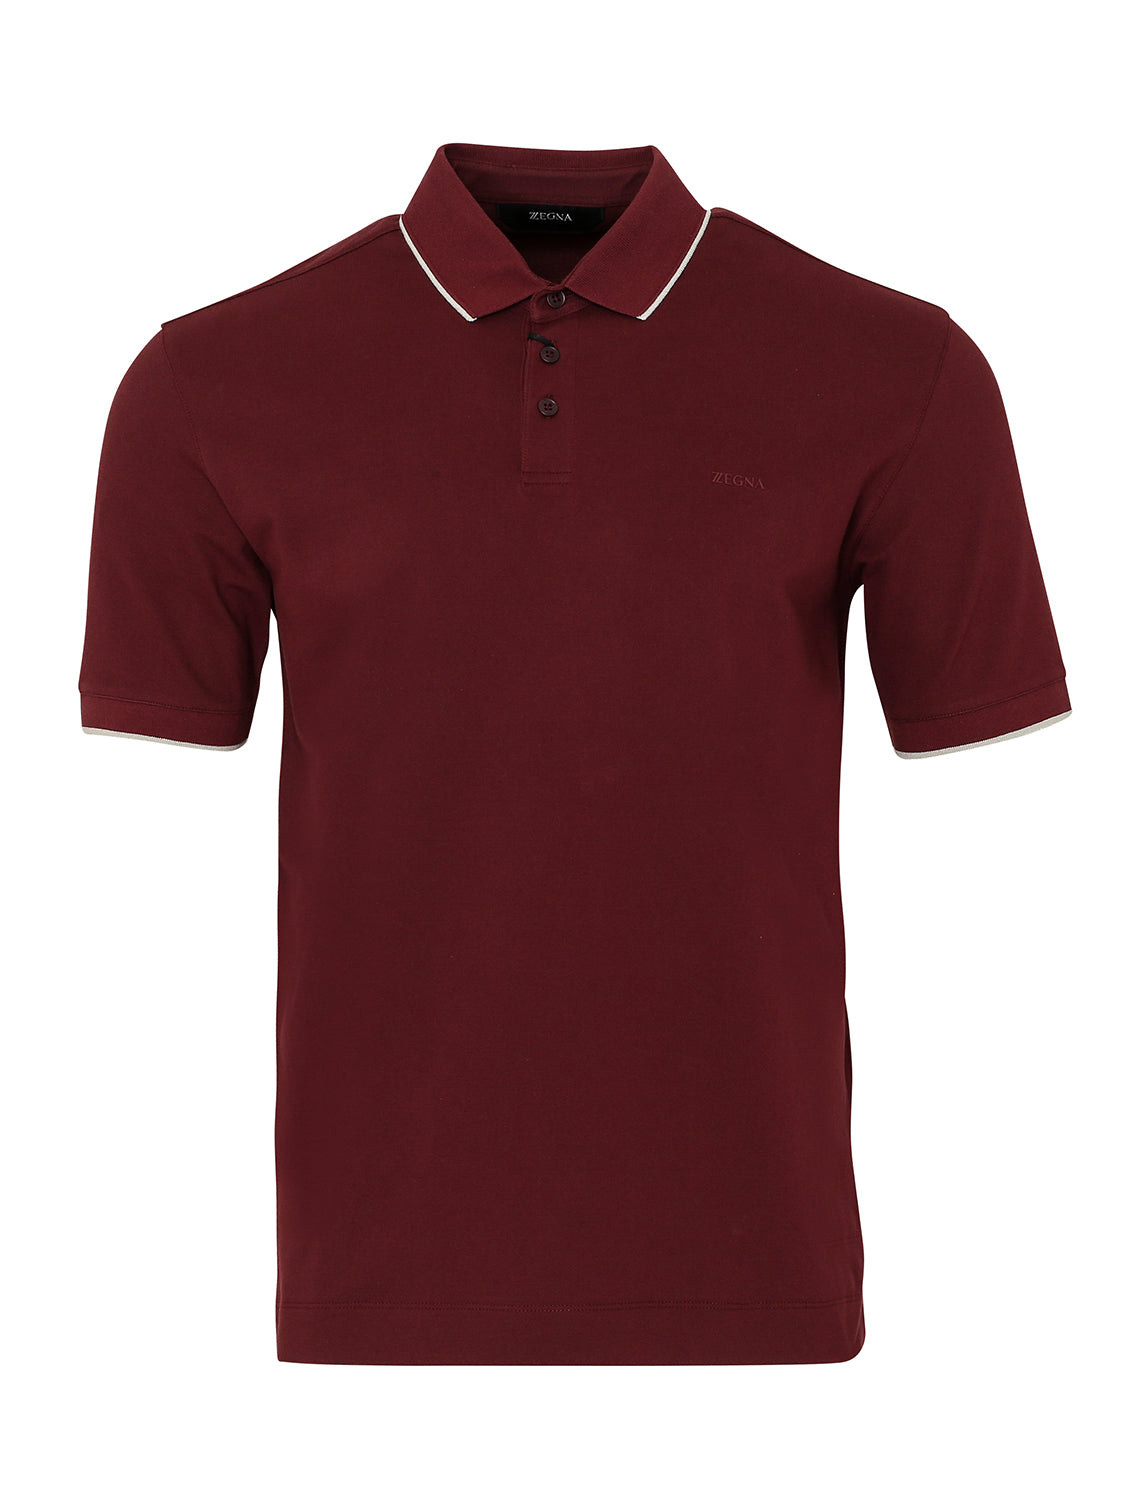 Z Zegna Stretch Cotton Polo (Maroon) - Union 22